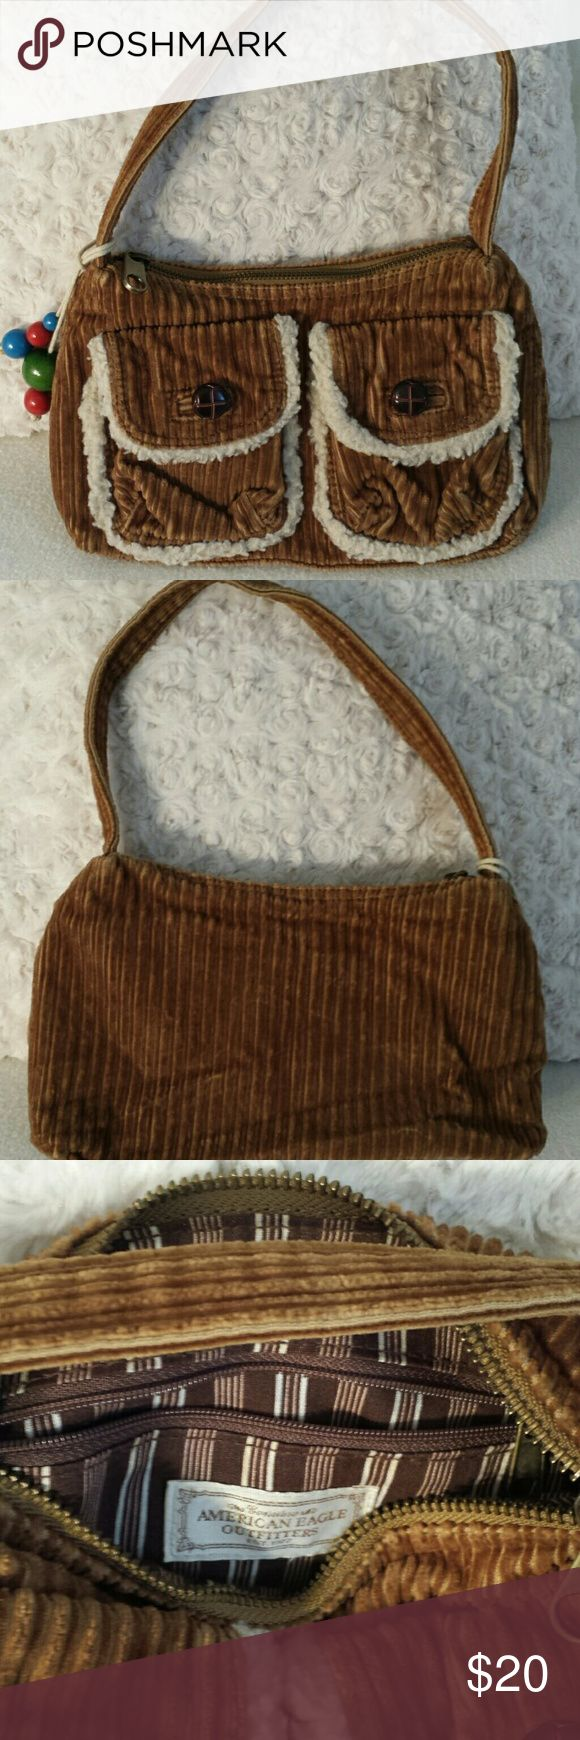 American Eagle beige corduroy baguette Super cute American eagle corduroy bag W10 x HD x D3x good condition American Eagle Outfitters Bags Clutches & Wristlets